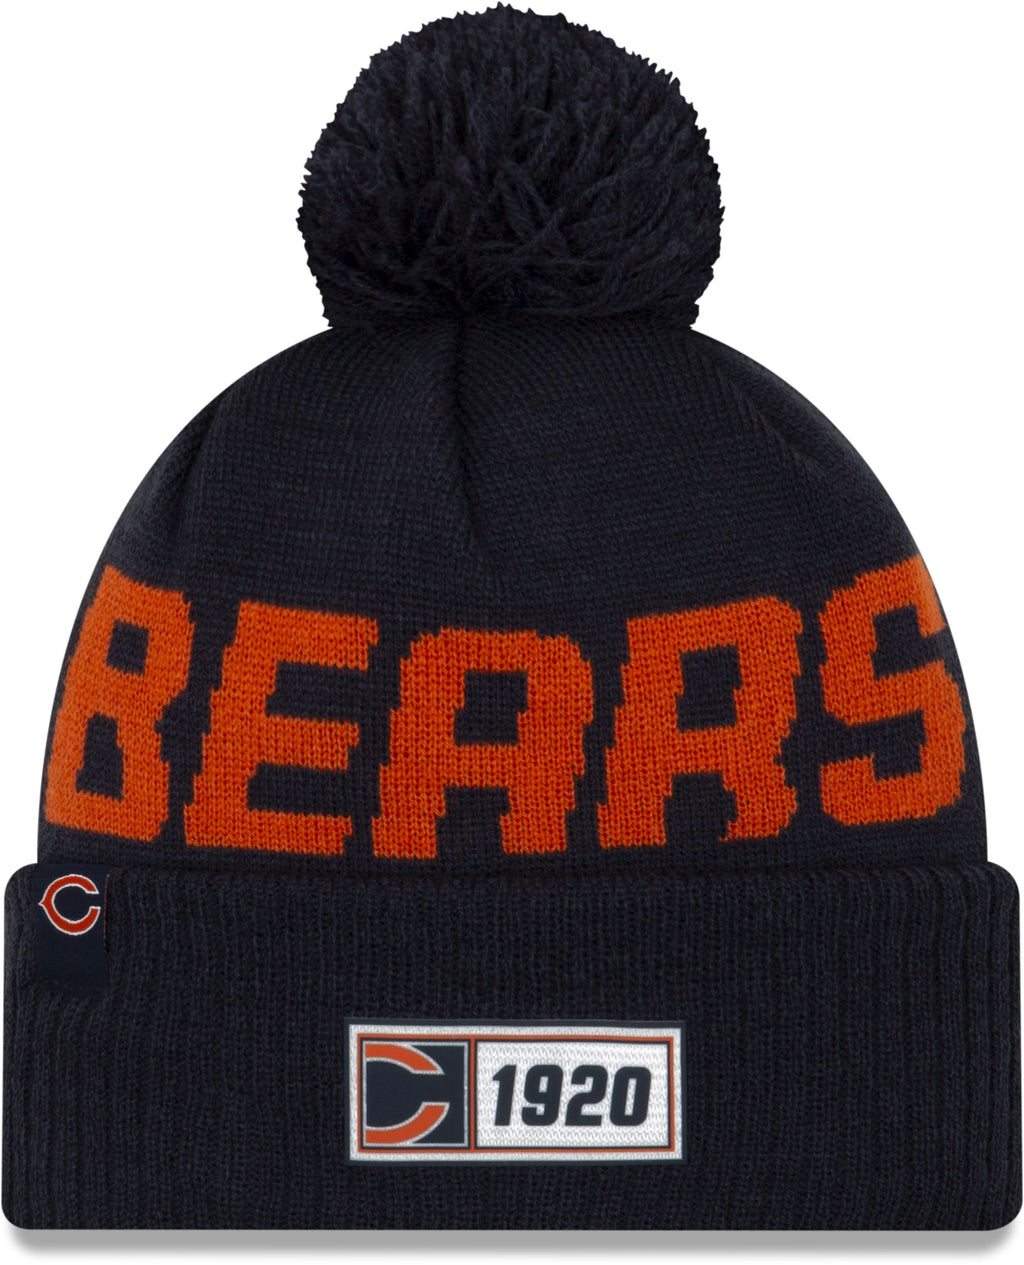 New Era ONF19 Cold Weather Chicago Bears Bobble Beanie Hat Navy